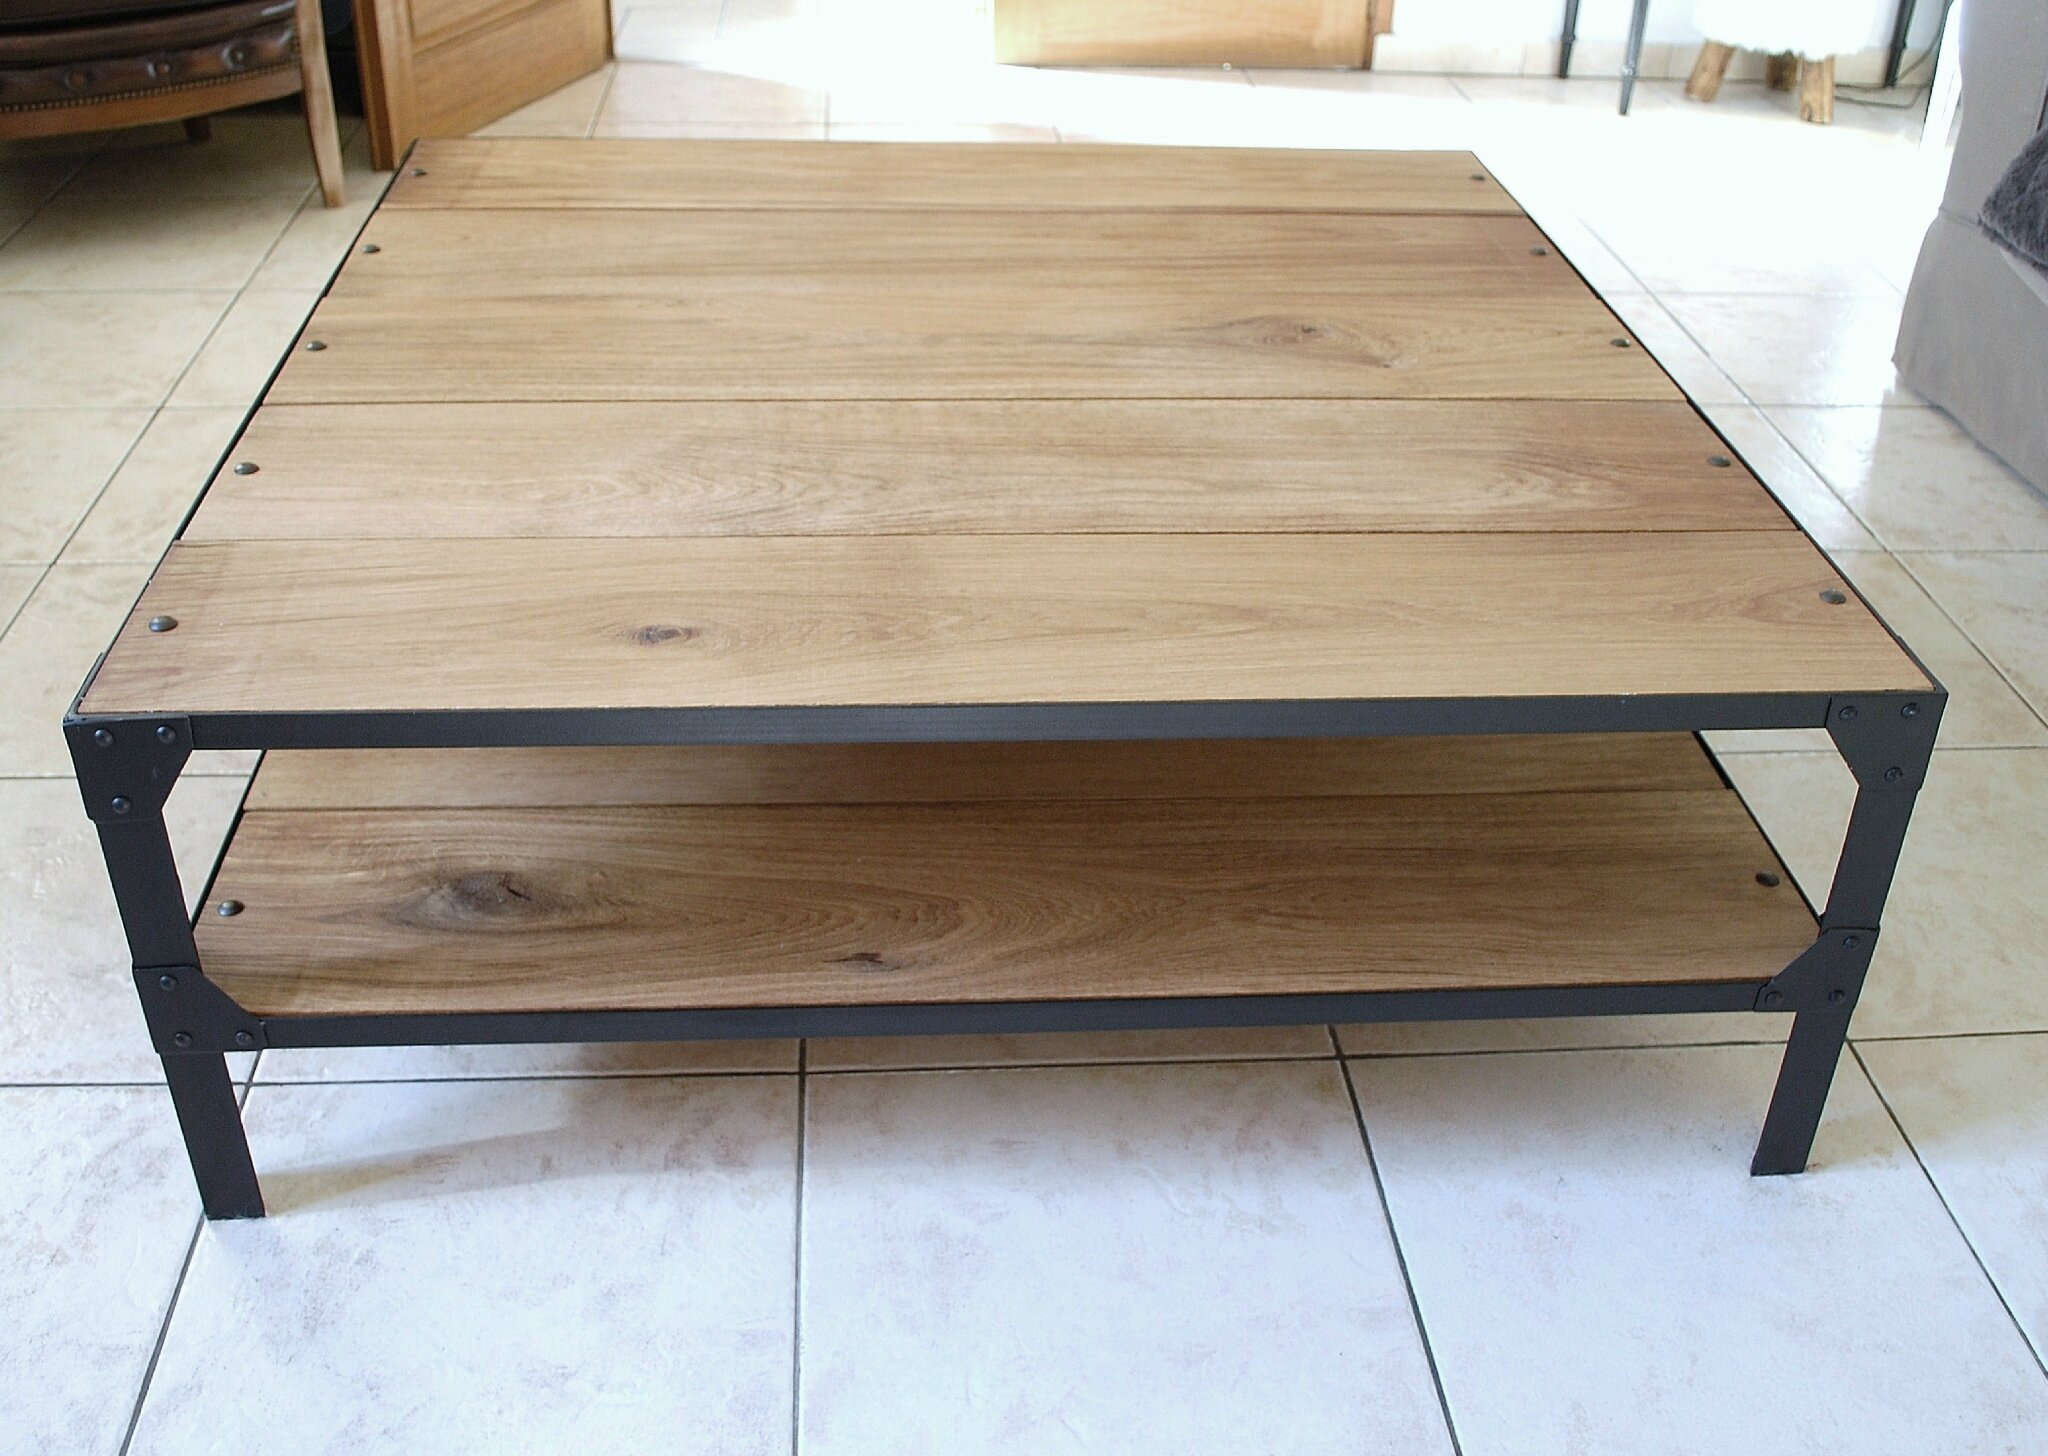 Table basse en ch ne l 39 atelier broc loft - Table basse en chene ...